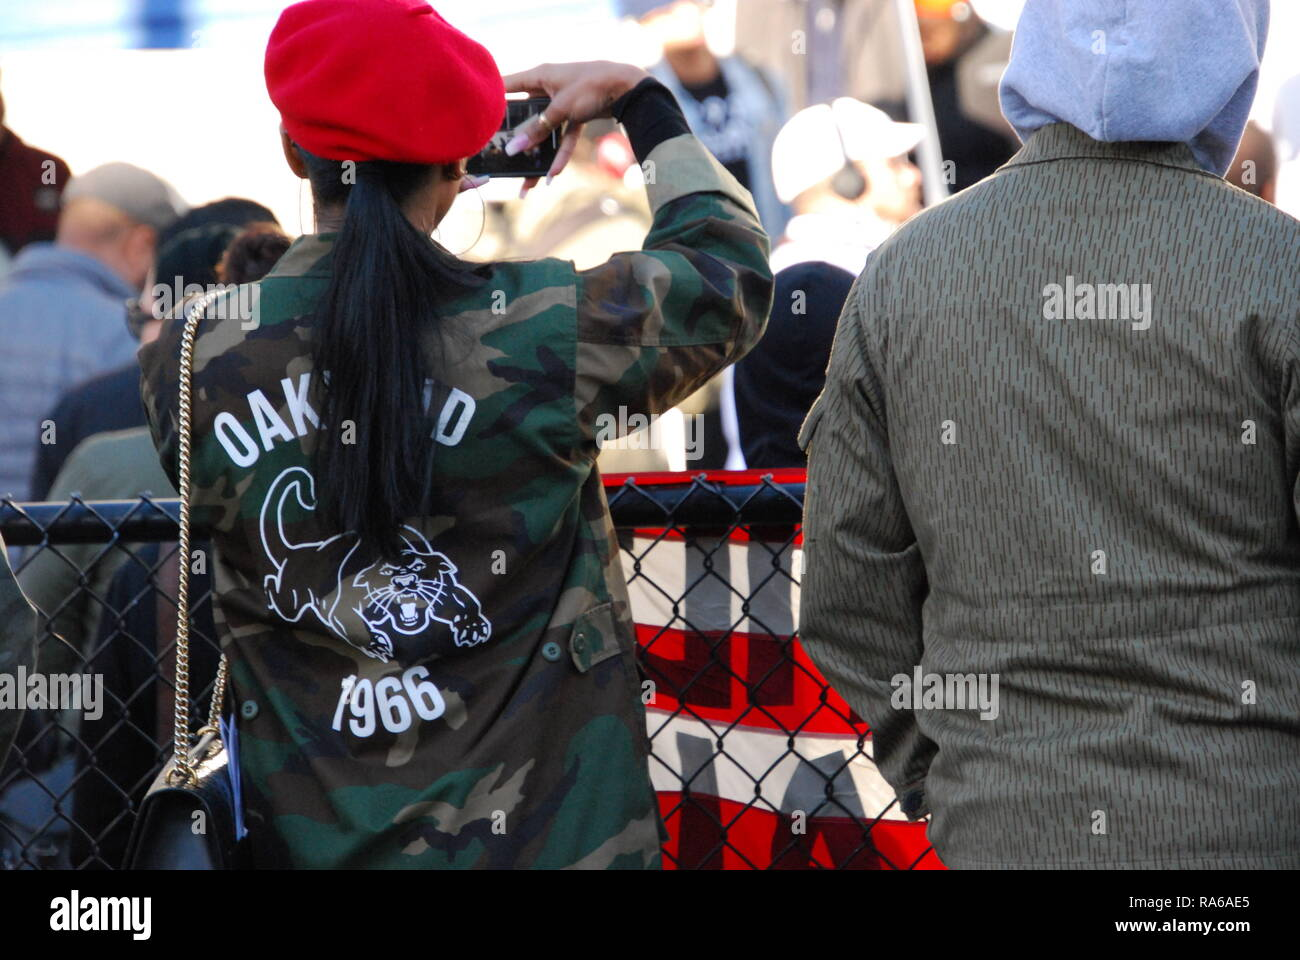 Oakland, California, USA. 1st Jan, 2019. A crowd gathered outside the Fruitvale BART station in Oakland, California, to mark the tenth anniversary since Oscar Grant was killed there by a BART police officer. Credit: Scott Morris/Alamy Live News - Stock Image